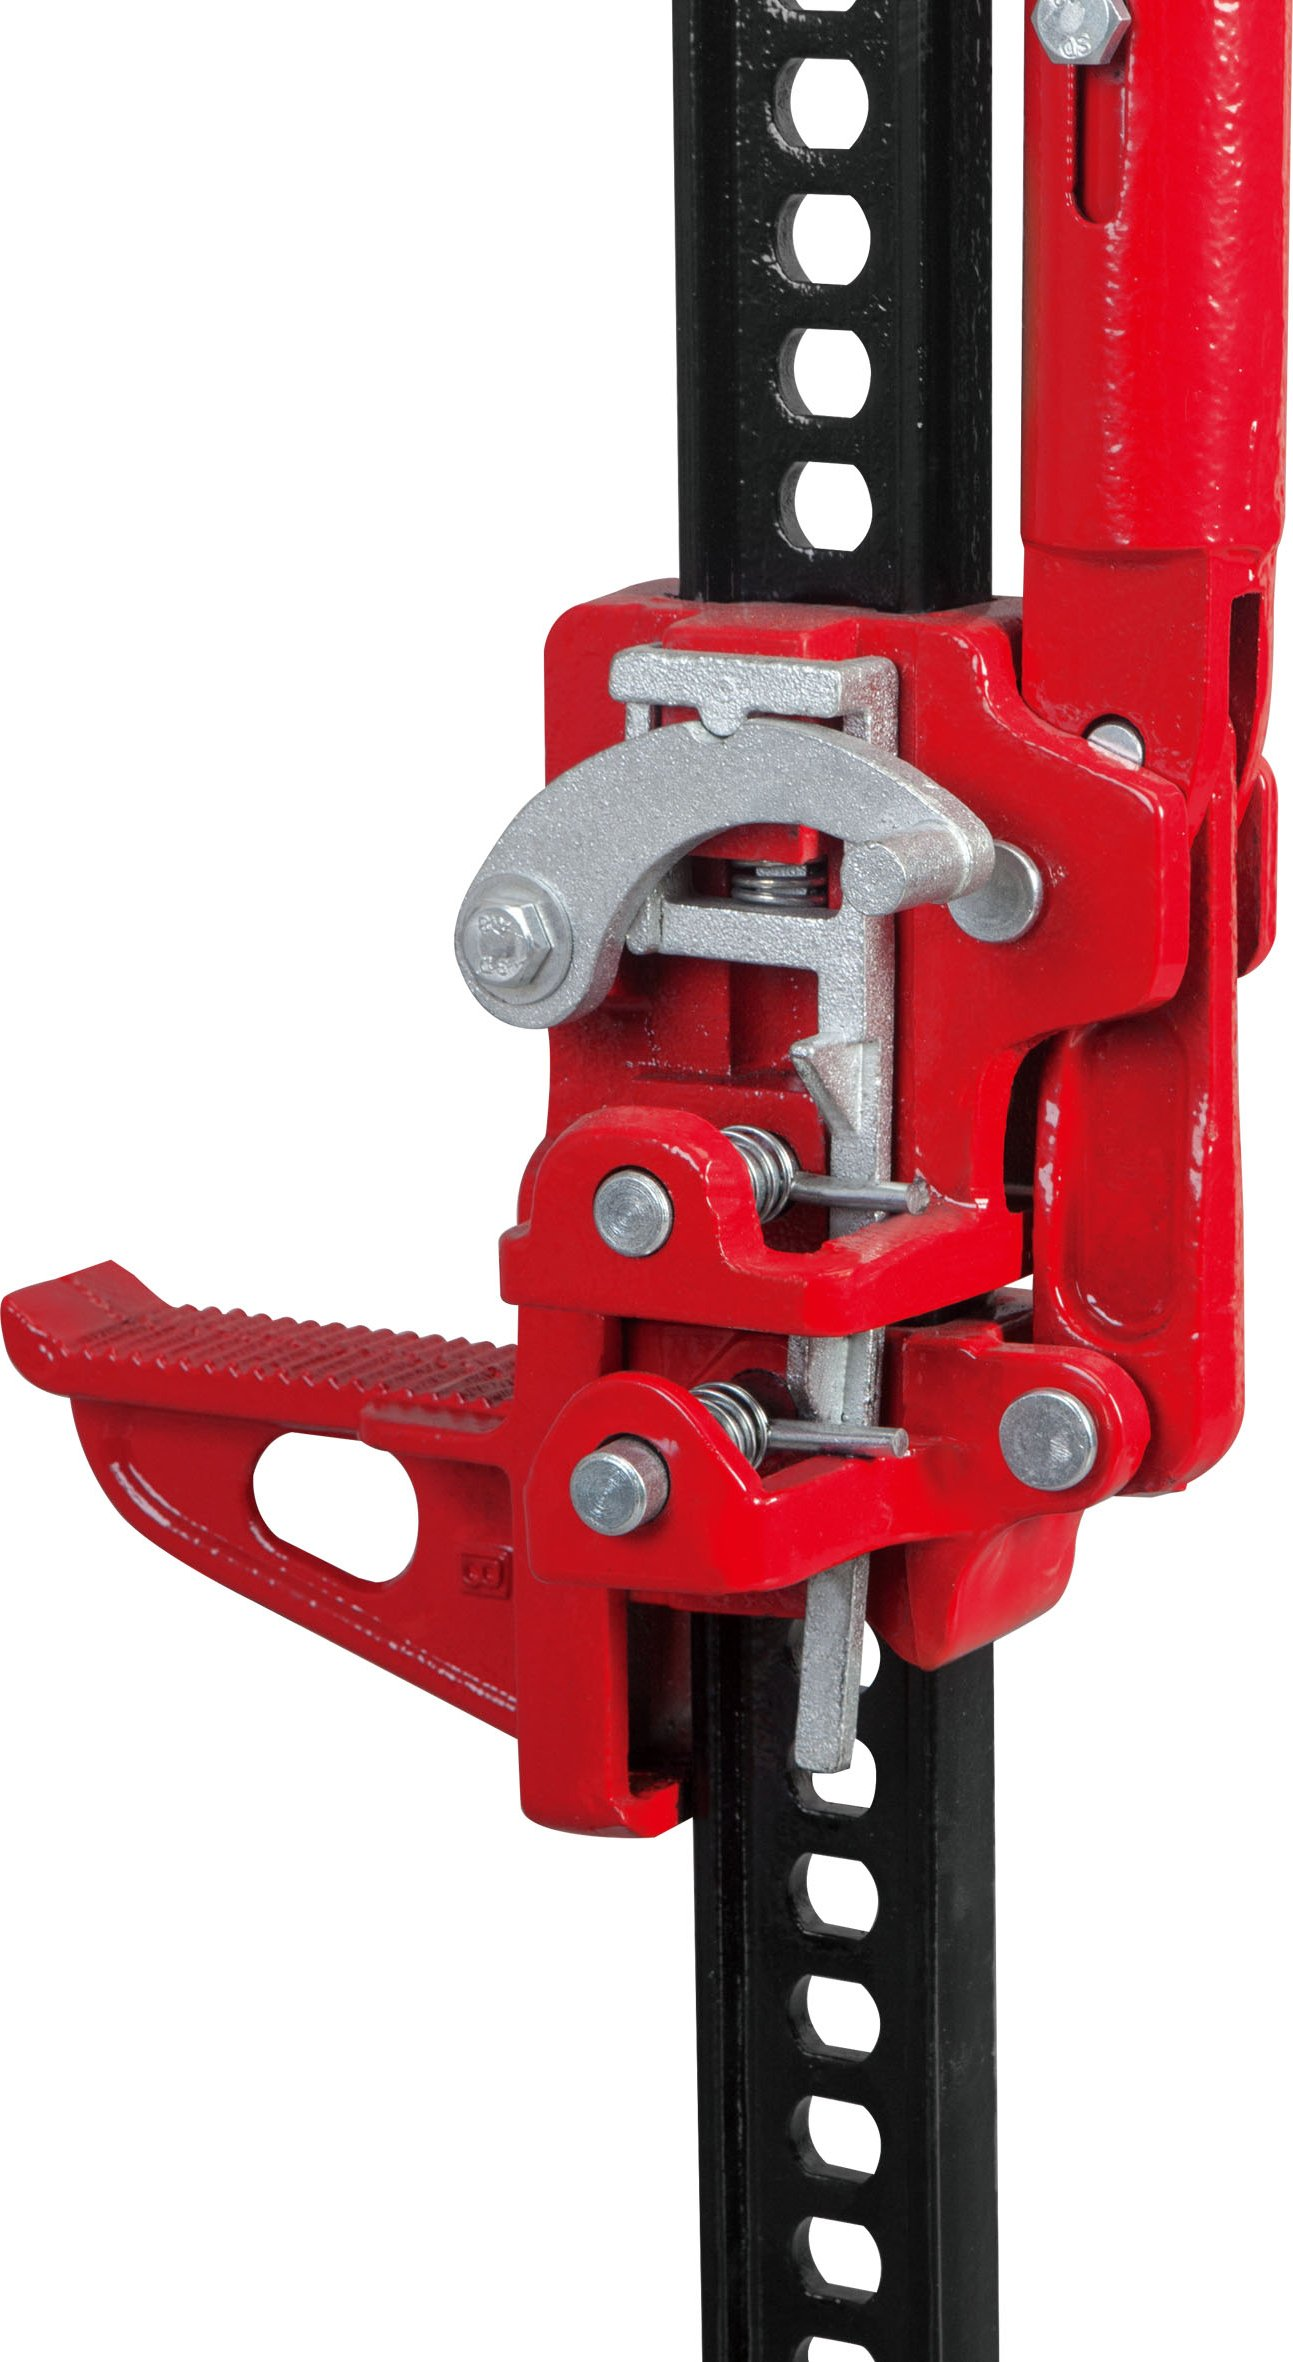 Torin Big Red 60'' Ratcheting Off Road/Utility Farm Jack, 3 Ton Capacity by Torin (Image #11)